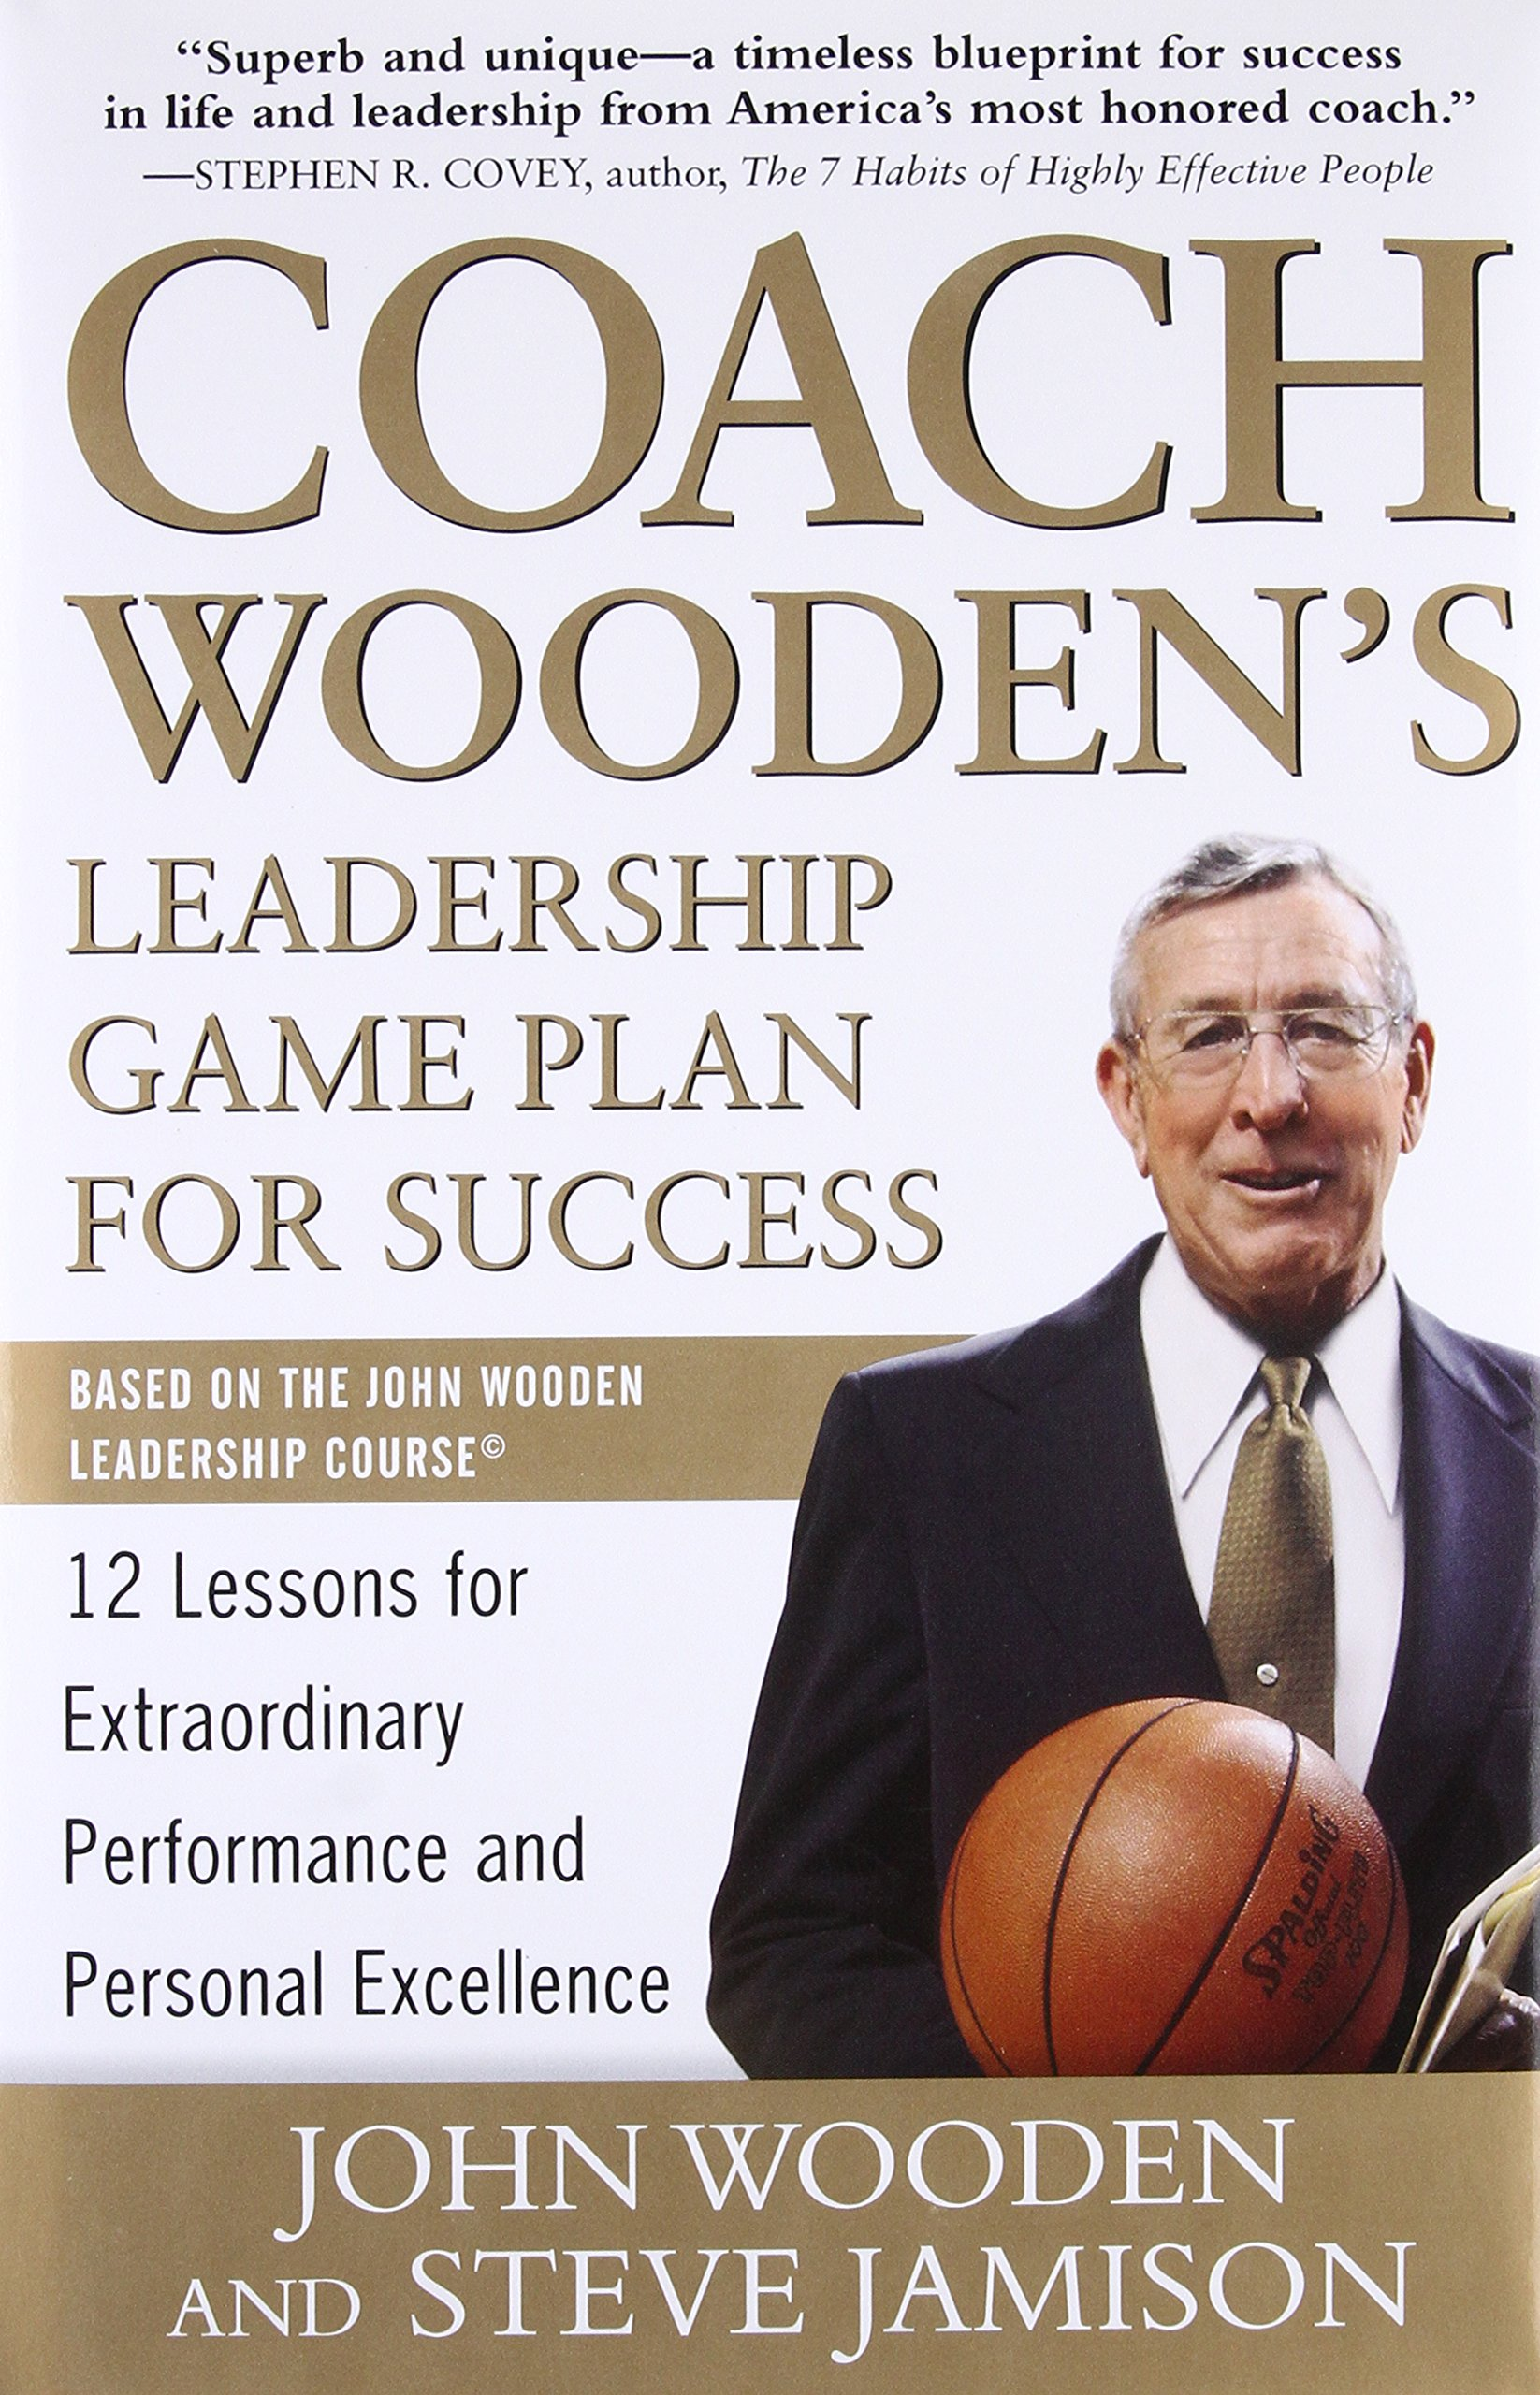 a5697fde2c6df Coach Wooden's Leadership Game Plan for Success: 12 Lessons for ...